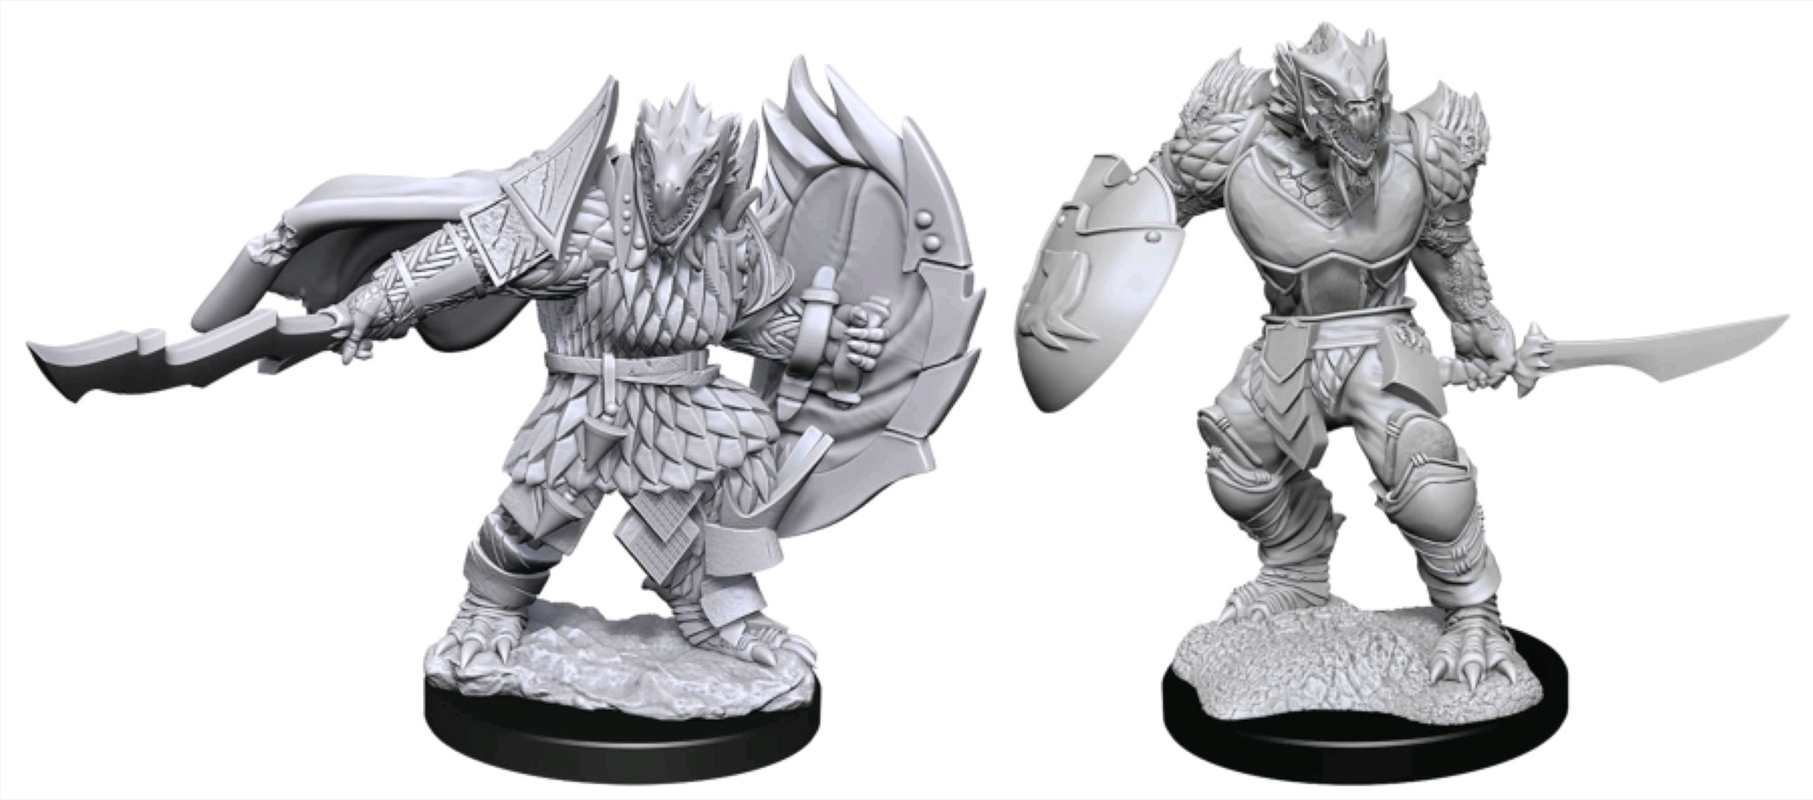 Dungeons & Dragons - Nolzur's Marvelous Unpainted Minis: Dragonborn Fighter Male   Games